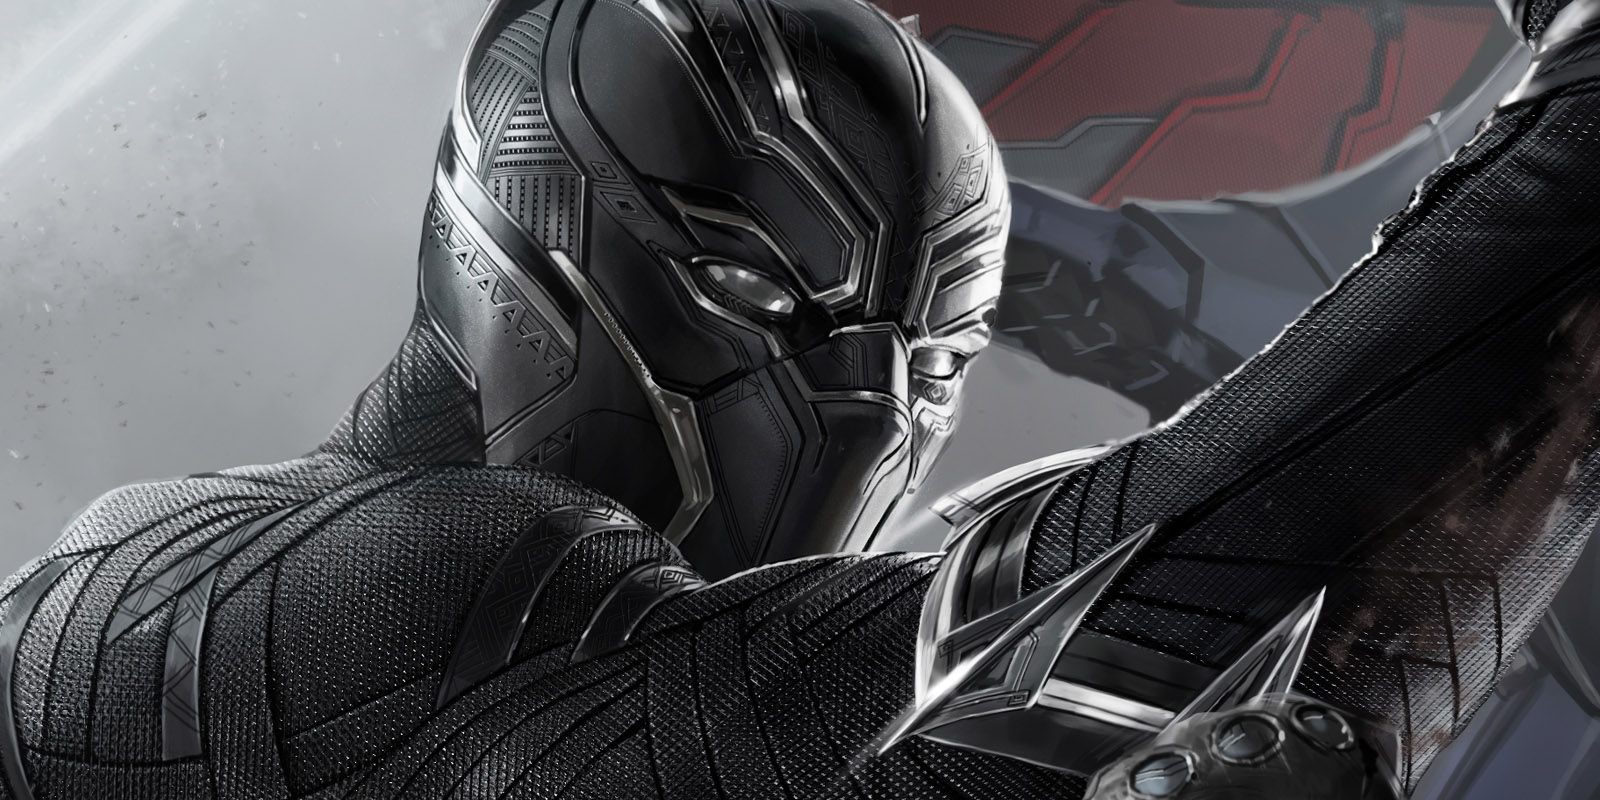 'Black Panther' Will Be the First Movie Screened in a Saudi Arabian Movie Theater in 35 Years